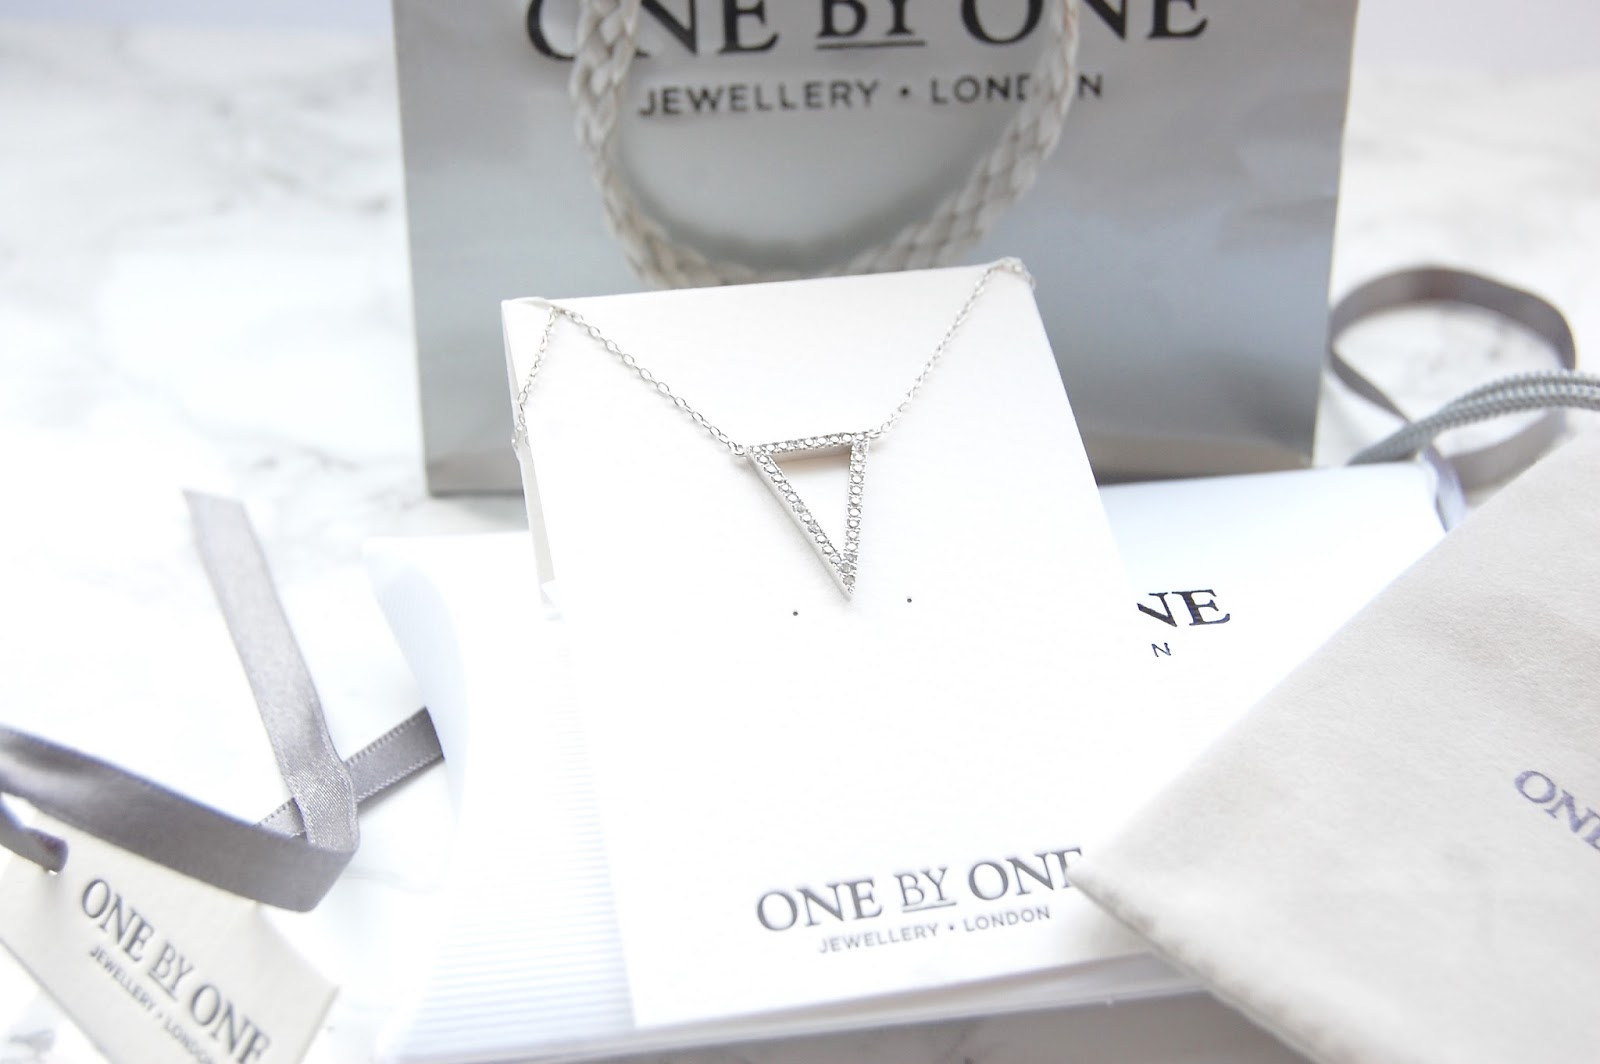 Read more for my One by One jewellery piece